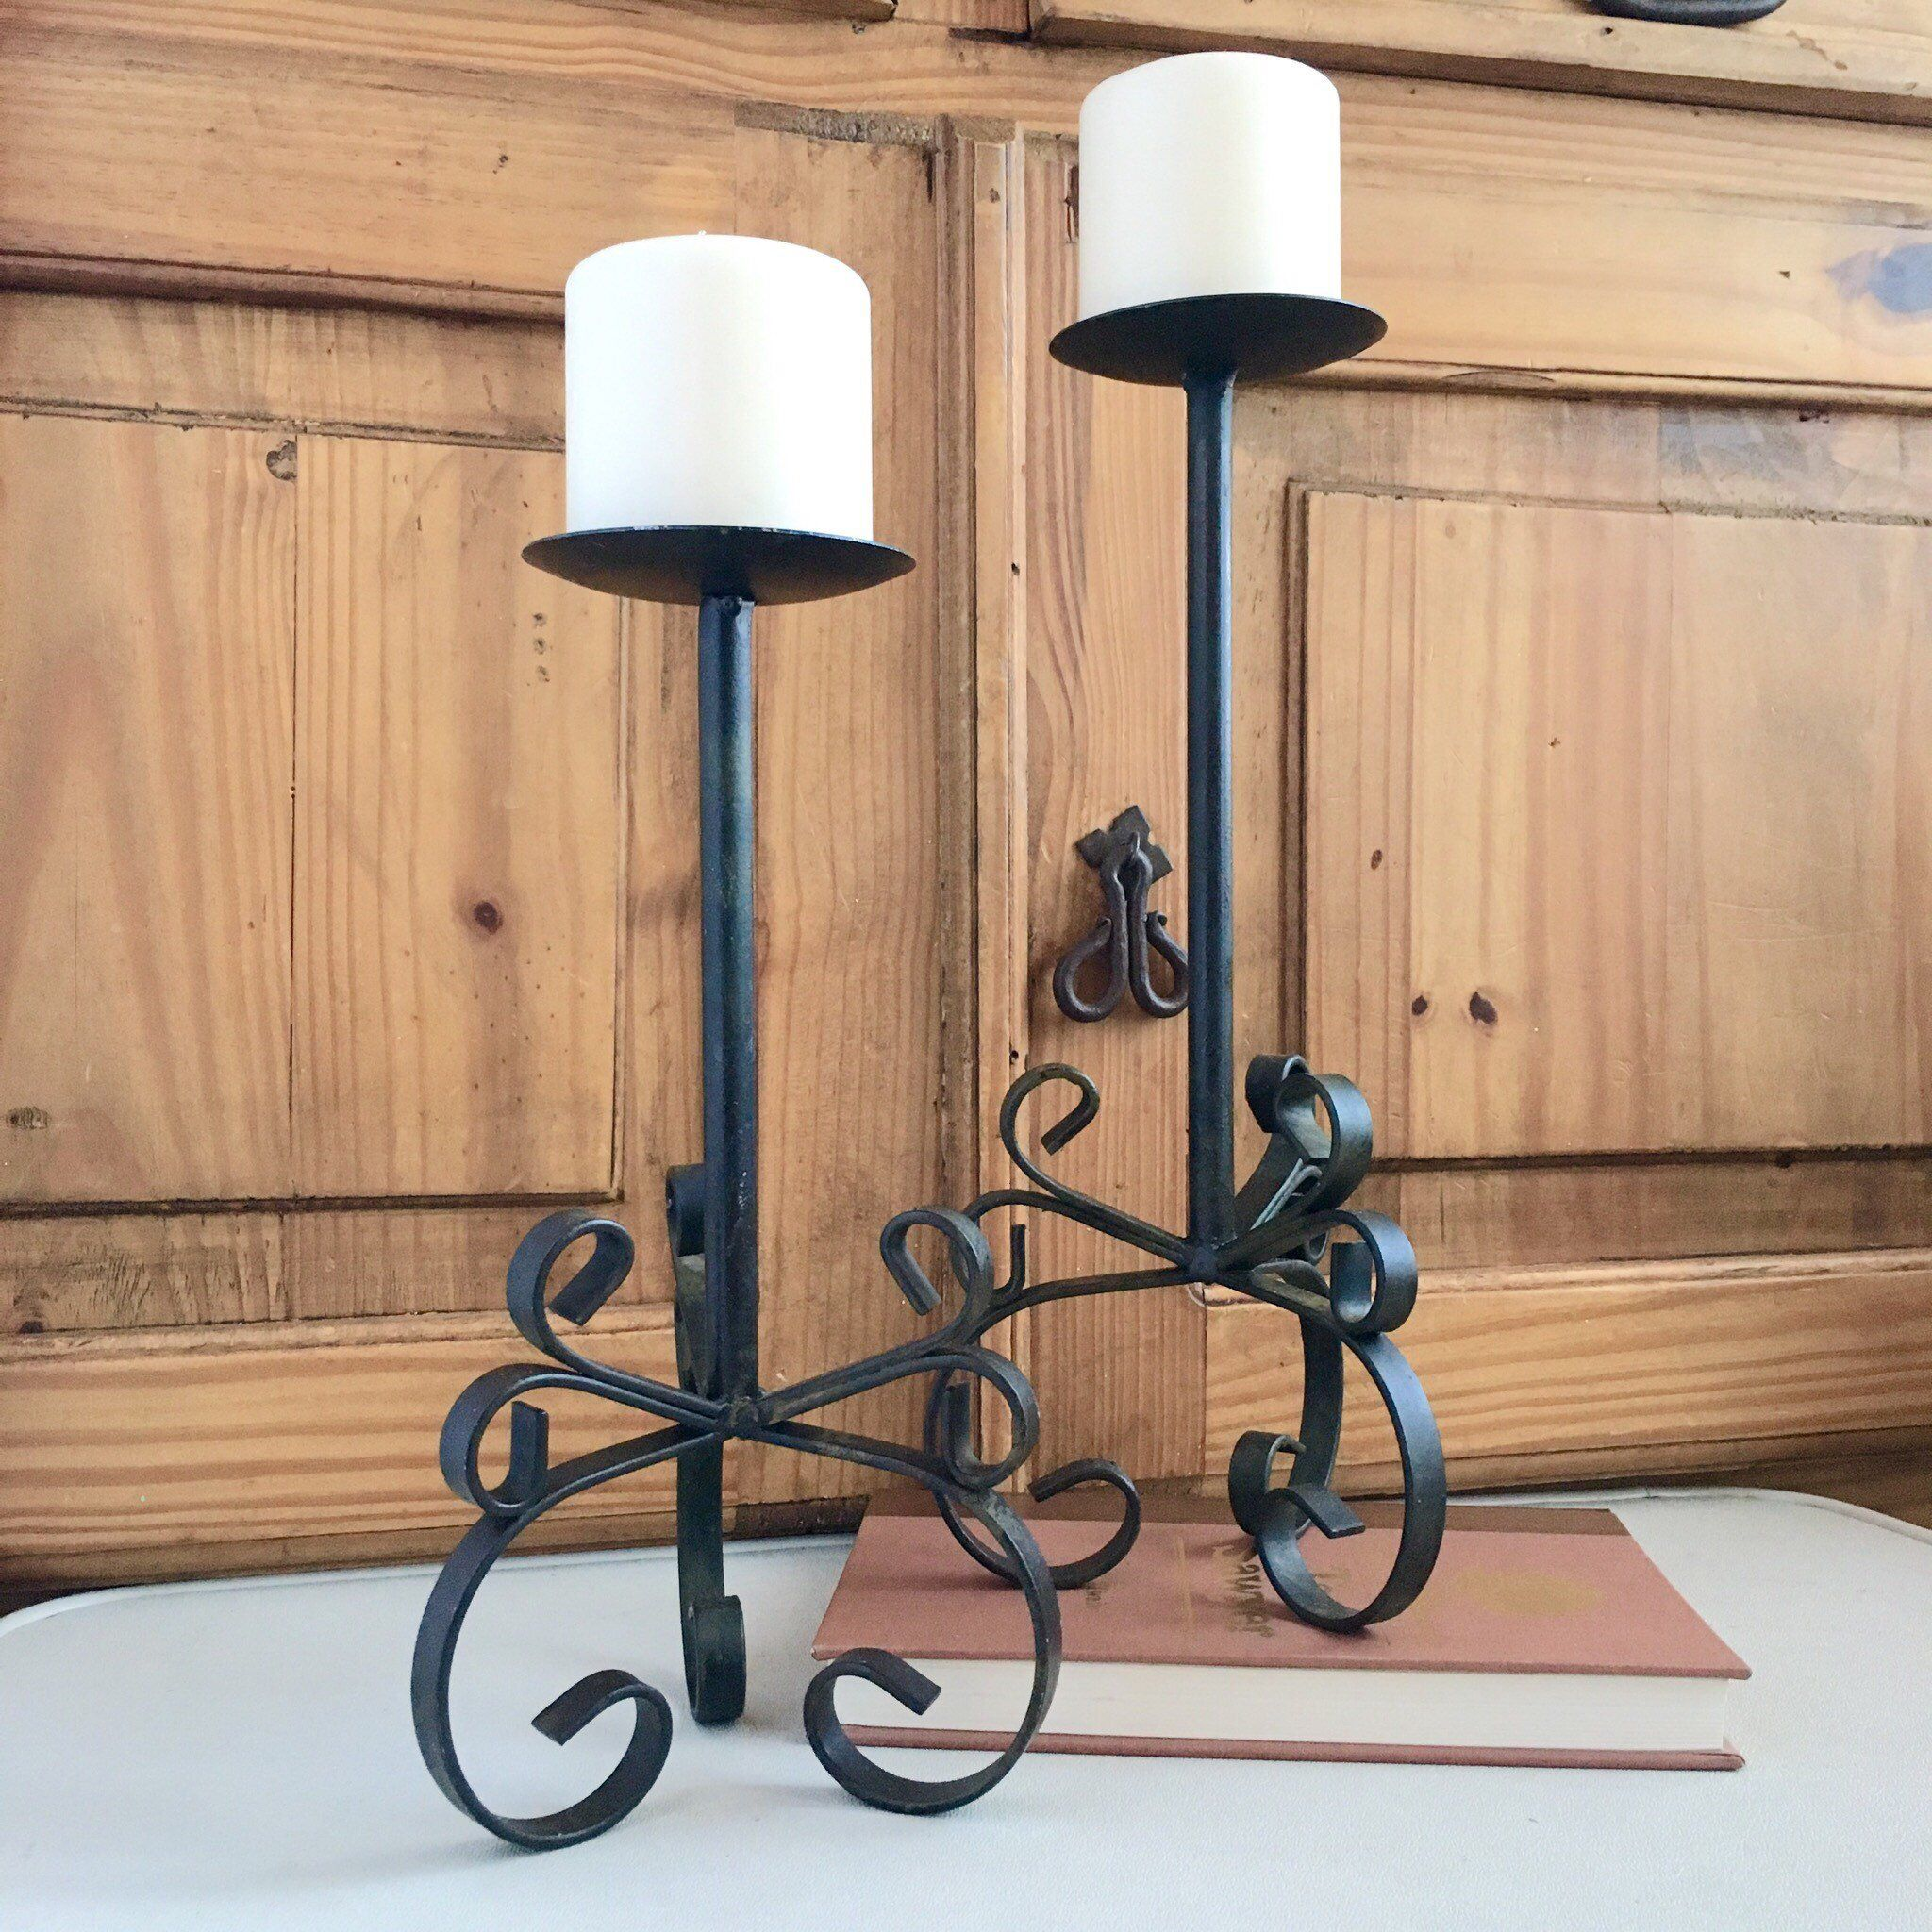 Large Black Wrought Iron Candle Holders Stands Tall Rustic ... on Black Wrought Iron Wall Candle Holders id=94257